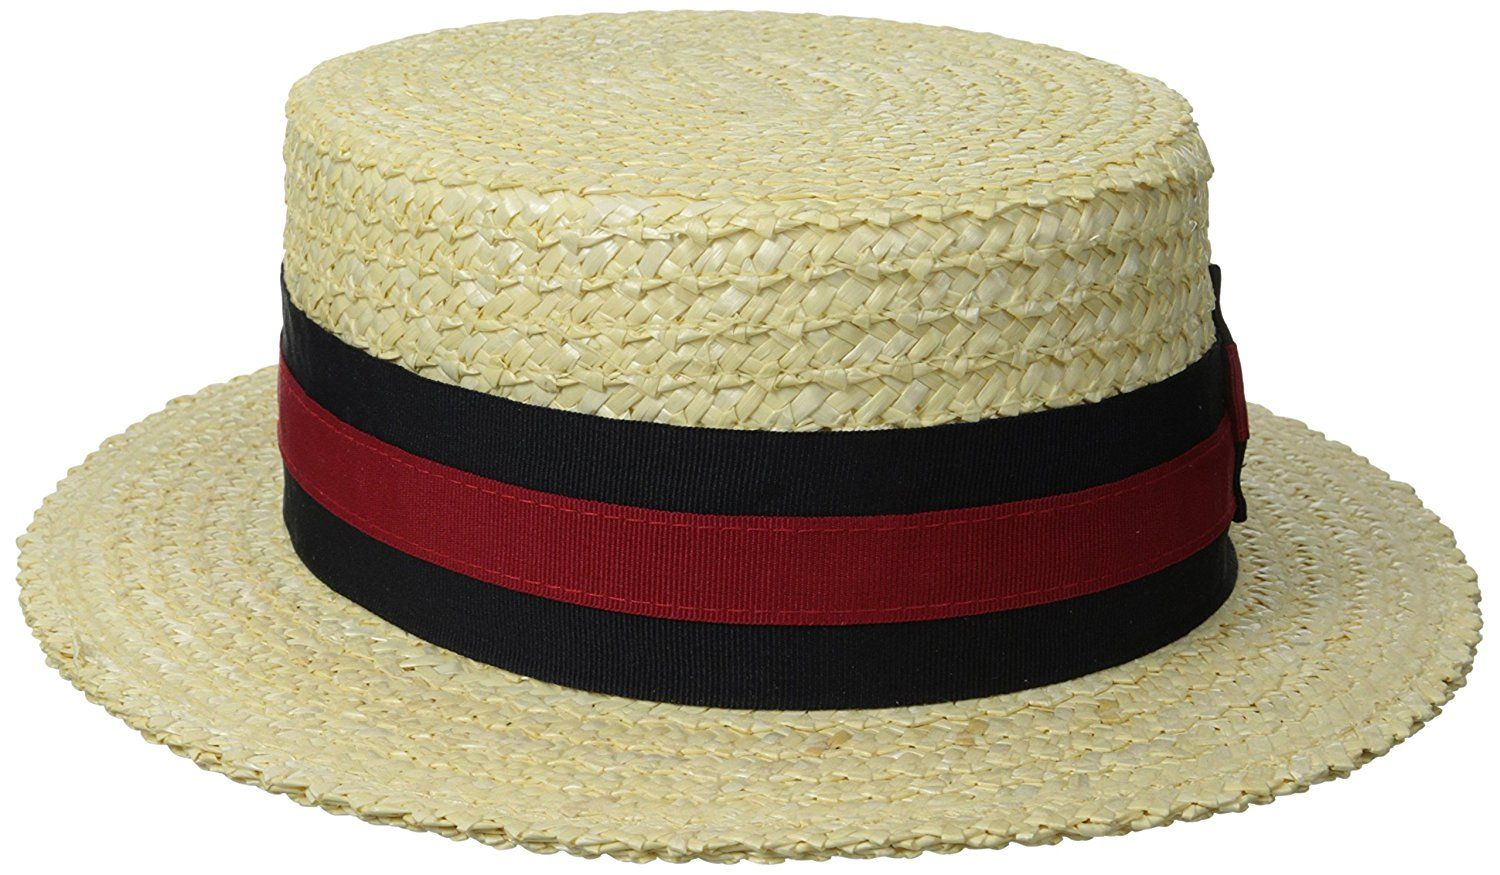 4b24bb3cf6a Scala Classico Hats Store - Parchment N Lead